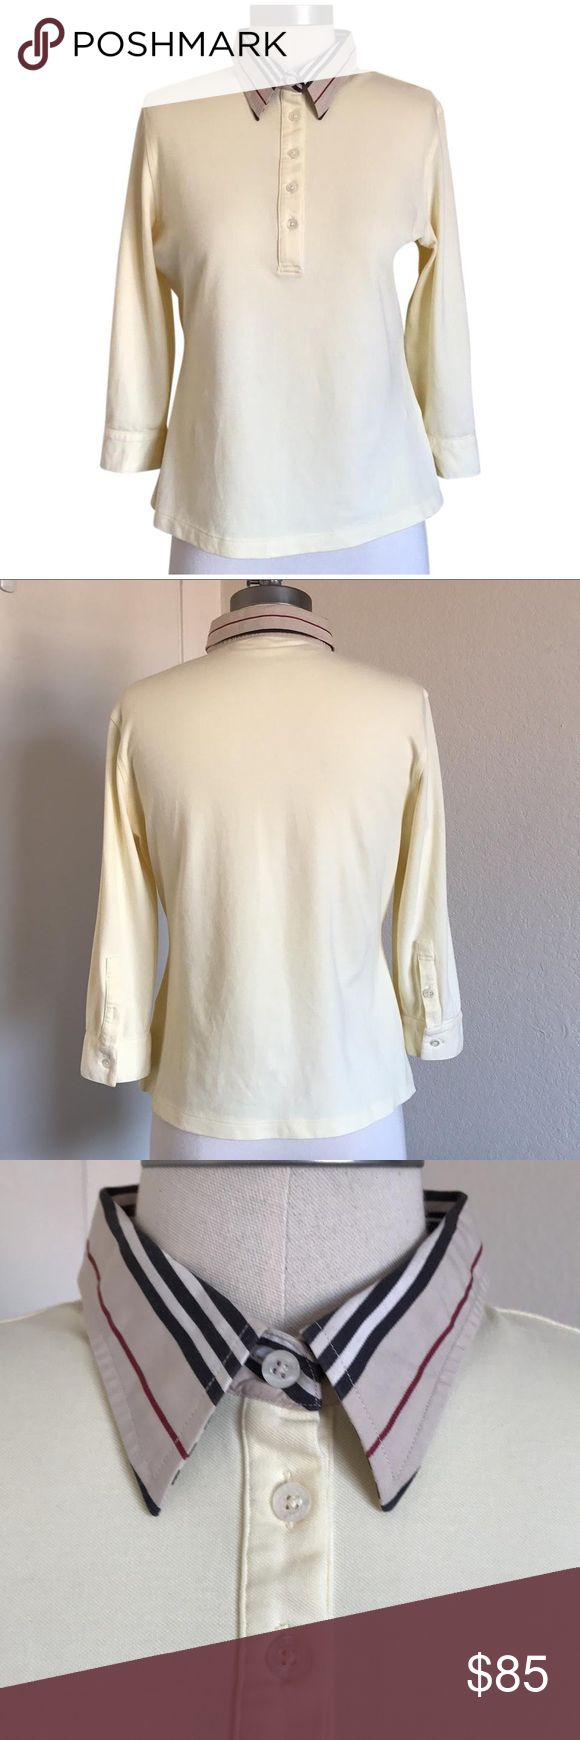 Light Yellow Polo Shirt Slim Fit, like new condition. 91% supination cotton, 9% spandex. Three quarters sleeves. Burberry Tops